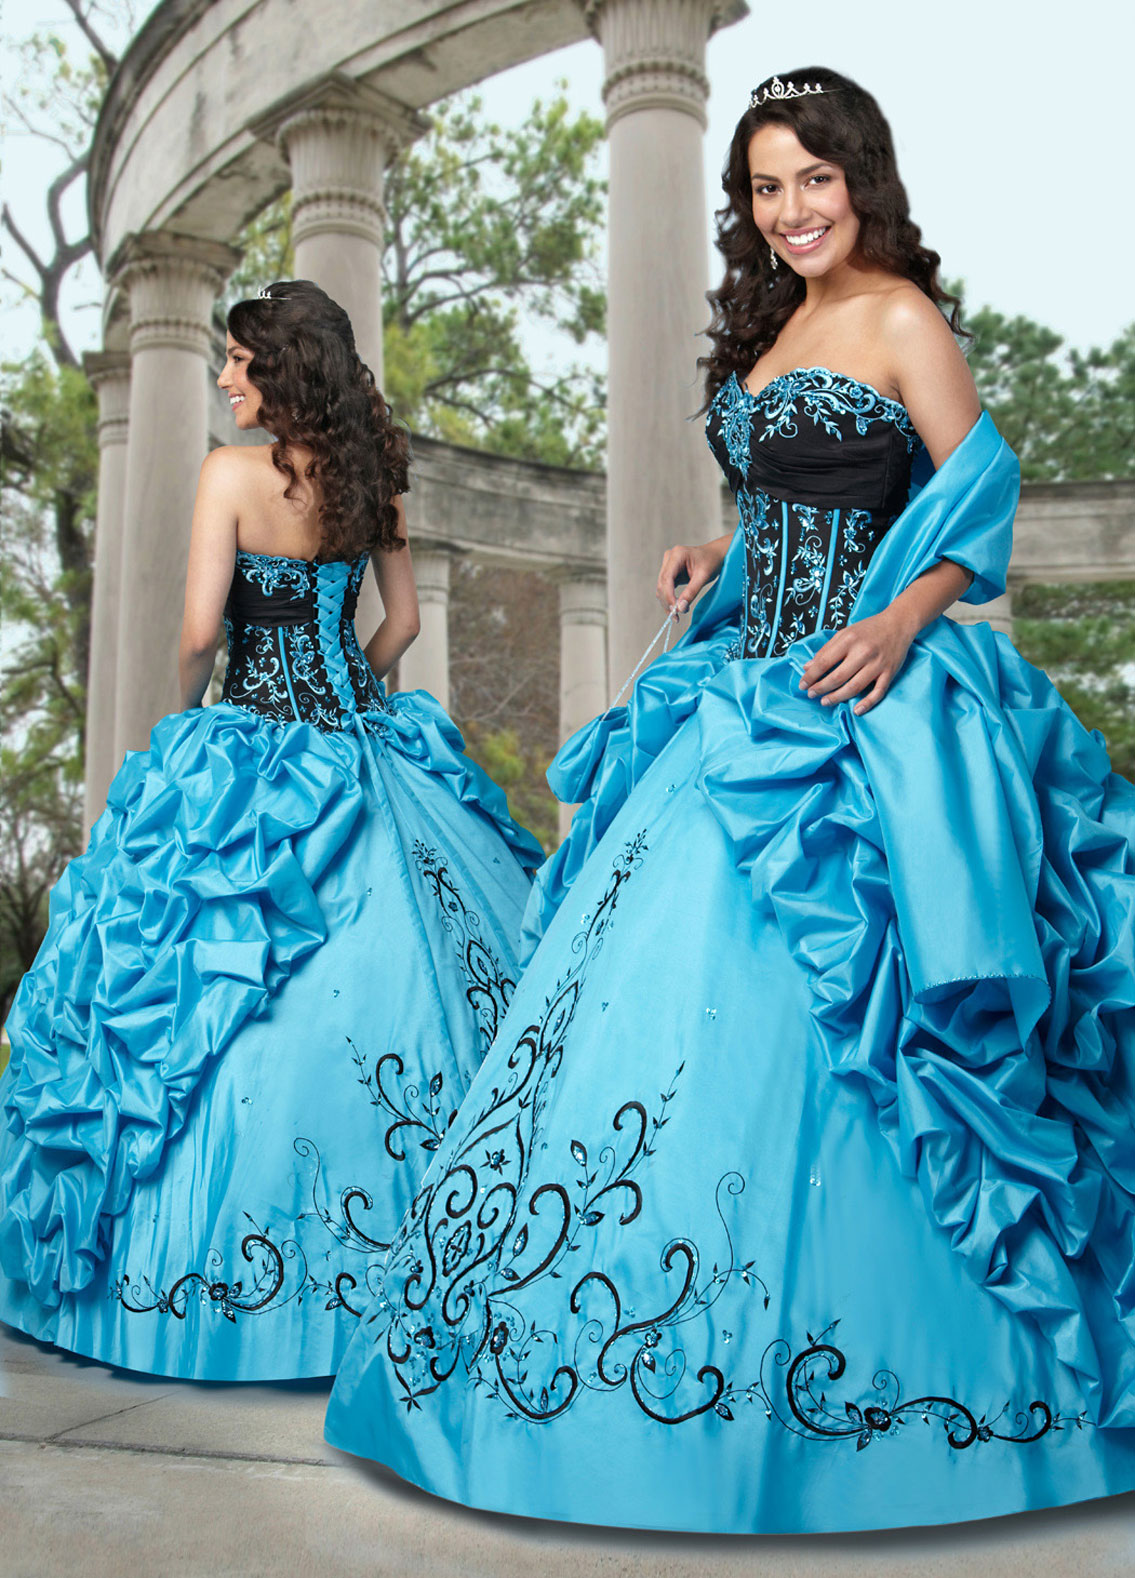 Turquoise And Black Ball Gown Strapless Sweetheart Full Length Quinceanera Dresses With Embroidery And Ruffles